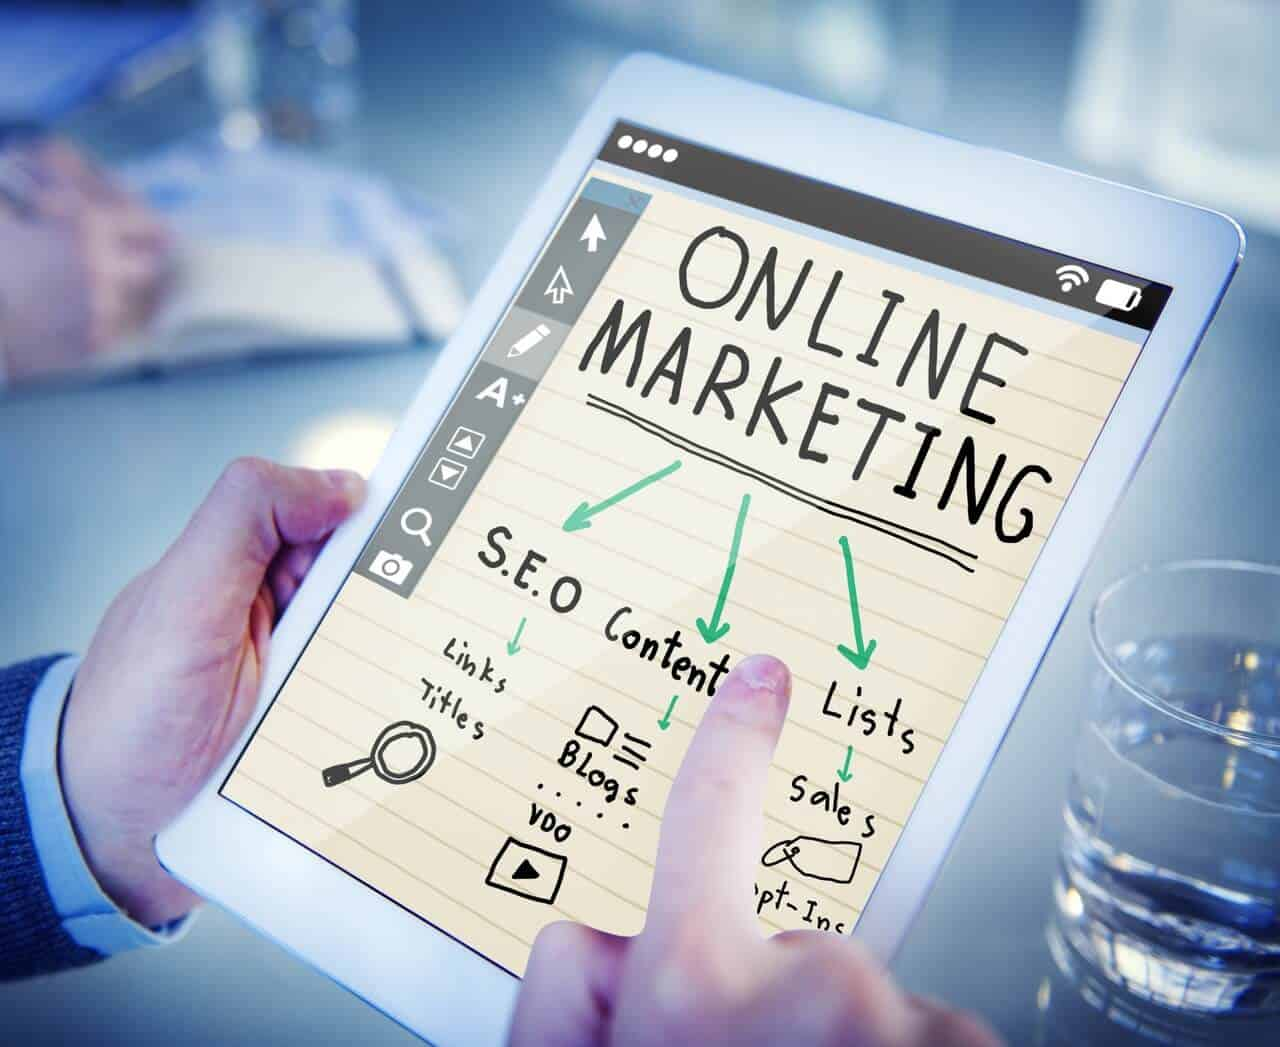 """an image of a tablet with the heading """"online marketing"""" and arrows pointing to SEO, content, and lists"""